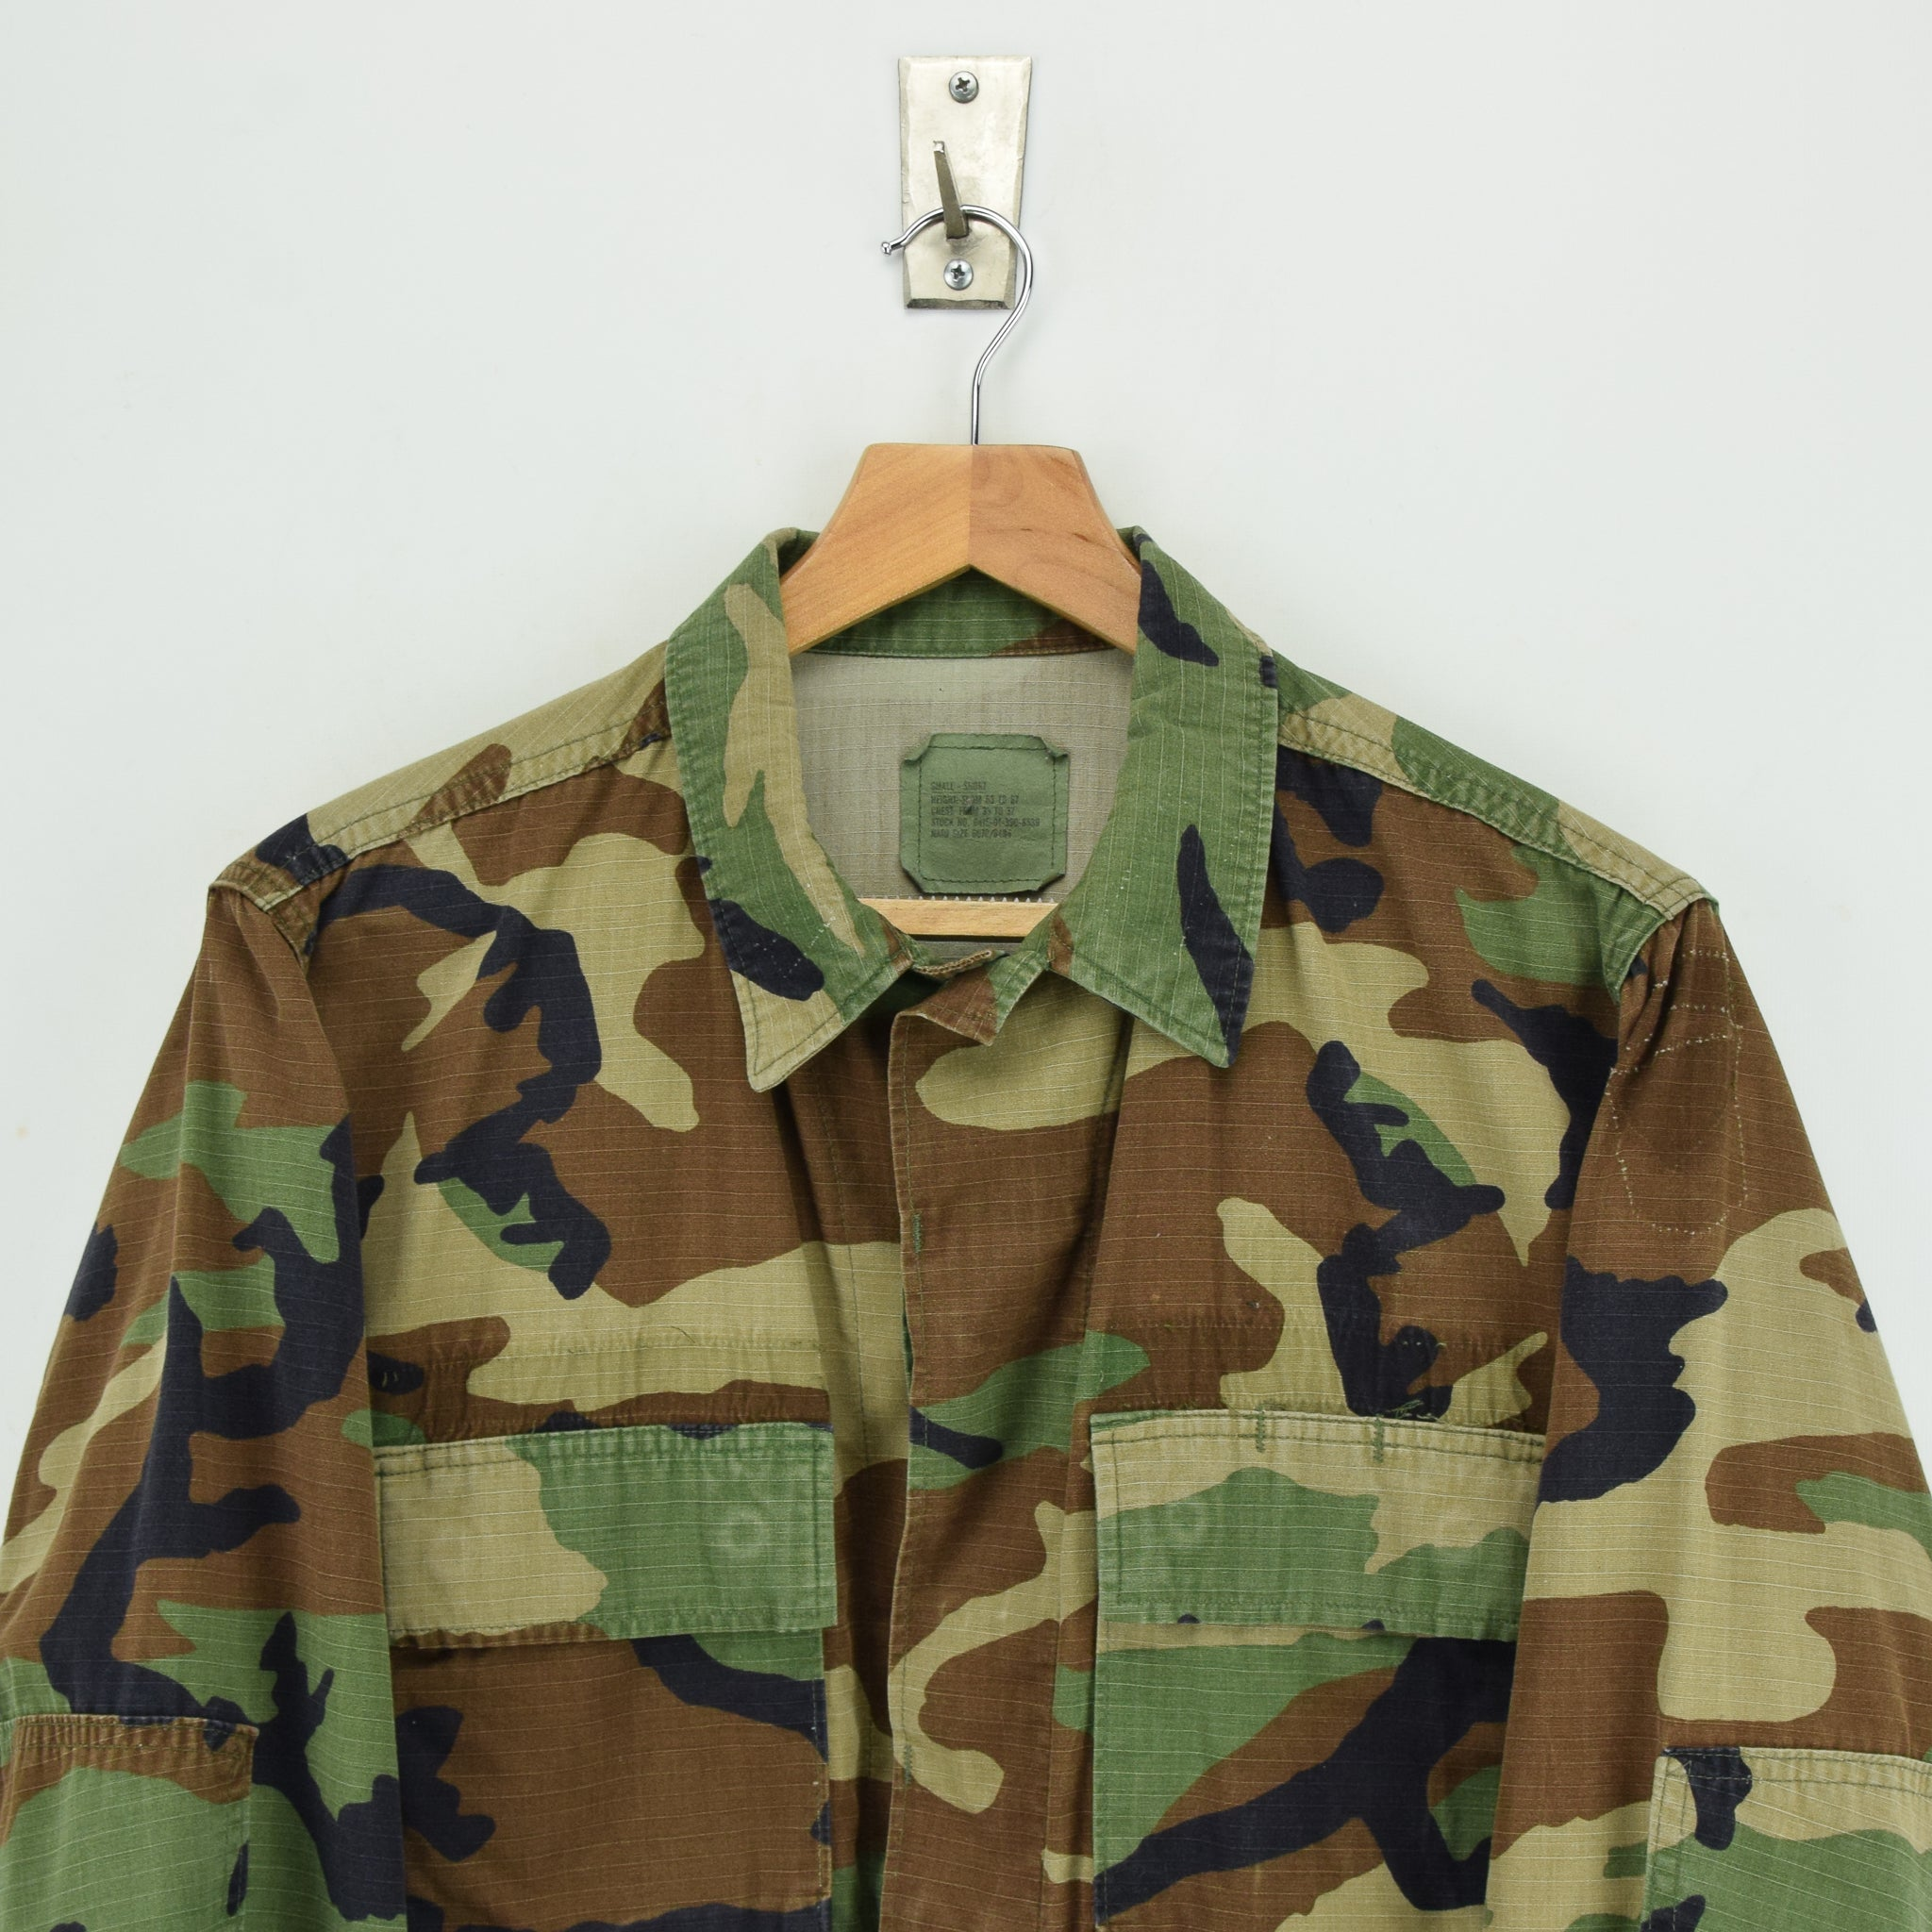 Vintage US Army Hot Weather Woodland Camouflage Combat Coat Field Jacket S chest